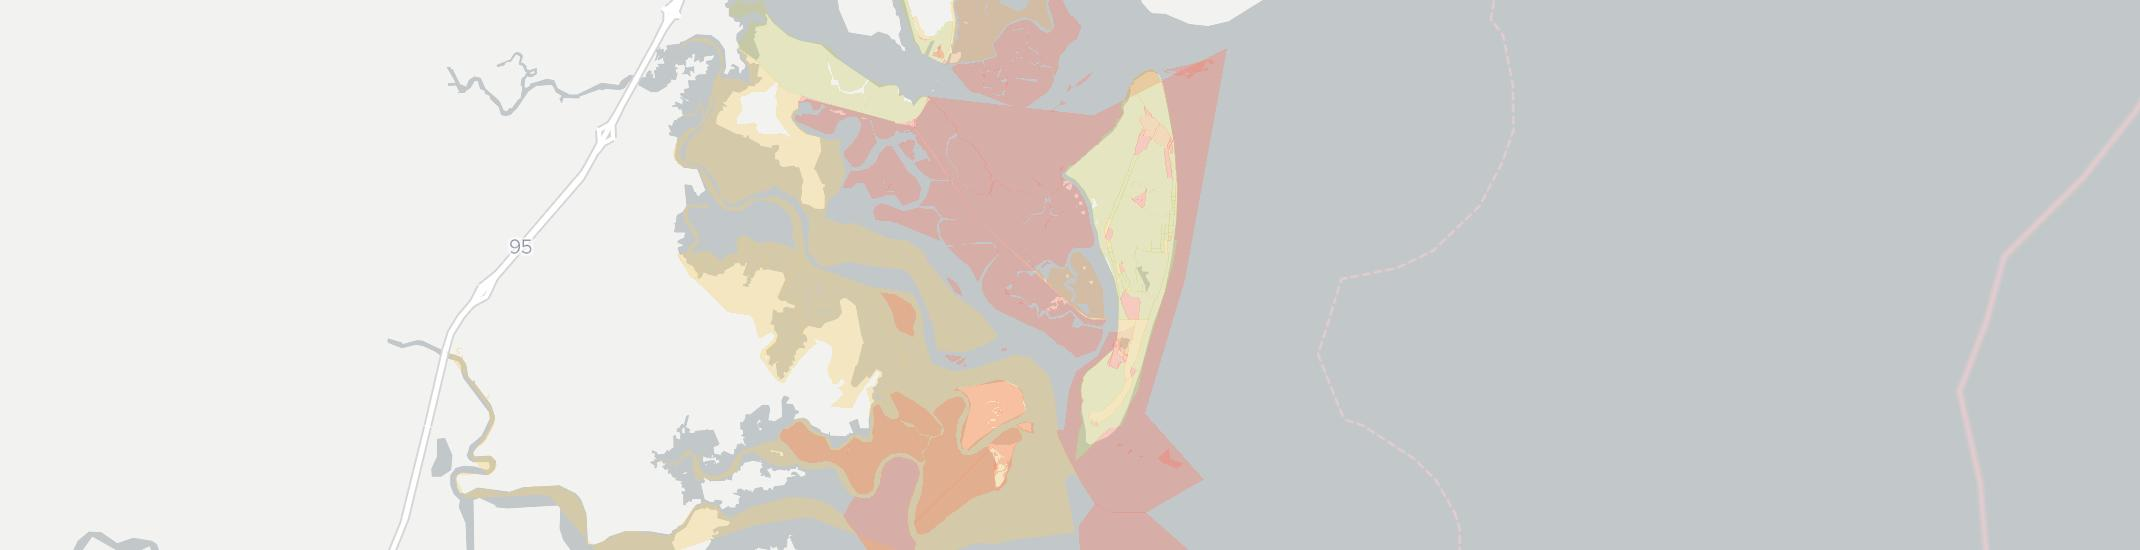 Jekyll Island Internet Competition Map. Click for interactive map.